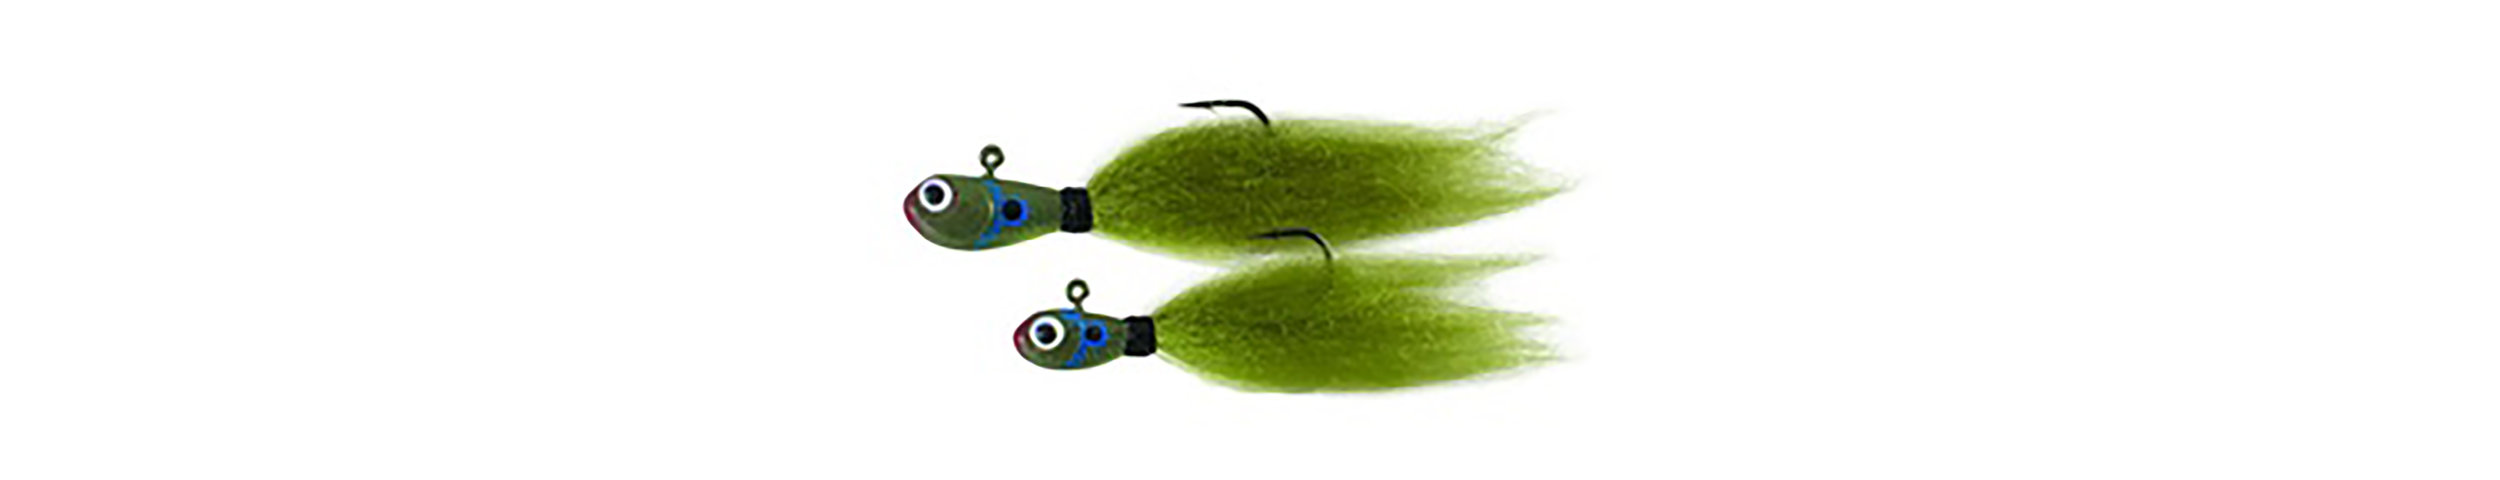 "The SPRO Phat Fly bluegill pattern, a multi-species hair jig, available in multiple colors and two sizes – 1/8th and 1/16th ounce. 1/8th ounce, 2.25"" length with a #1 size hook. 1/16th ounce, 2"" length with a #2 size hook."